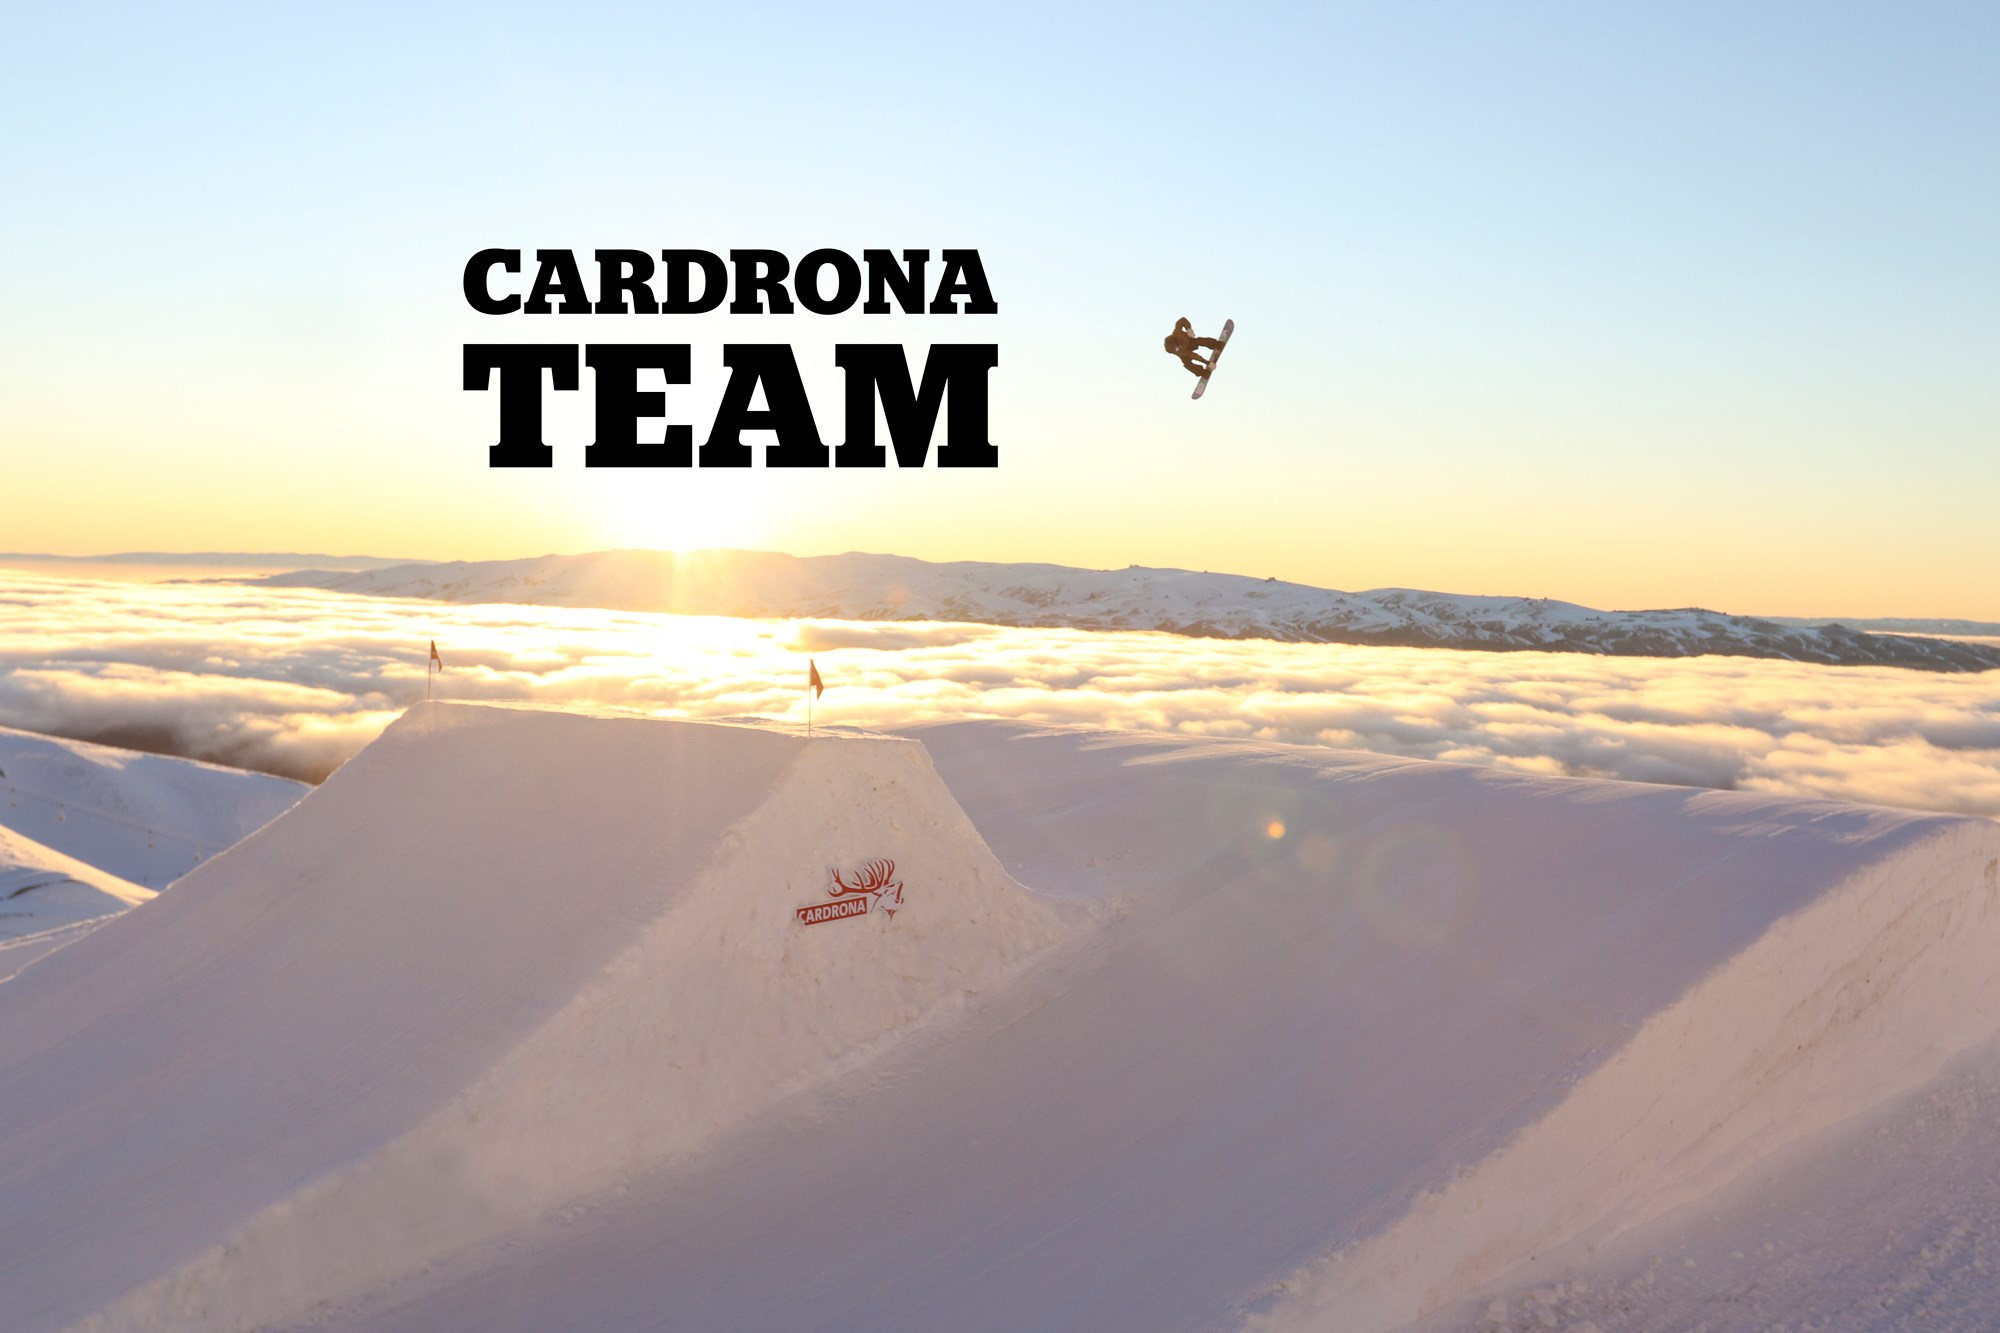 Cardrona Alpine Resort Team